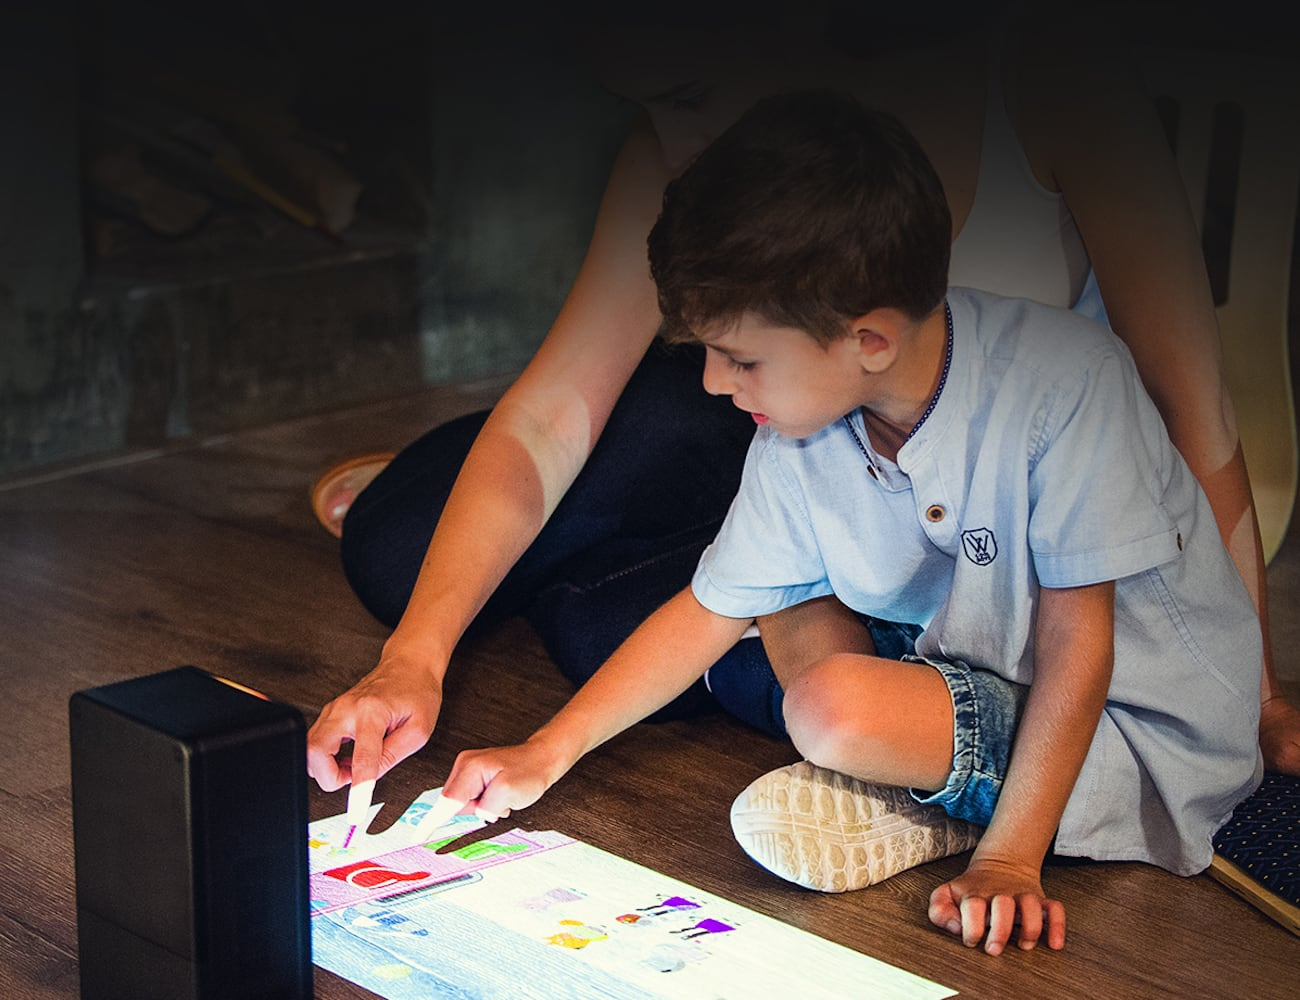 Puppy Cube Standalone Interactive Touchscreen Projector turns any surface into a touchscreen